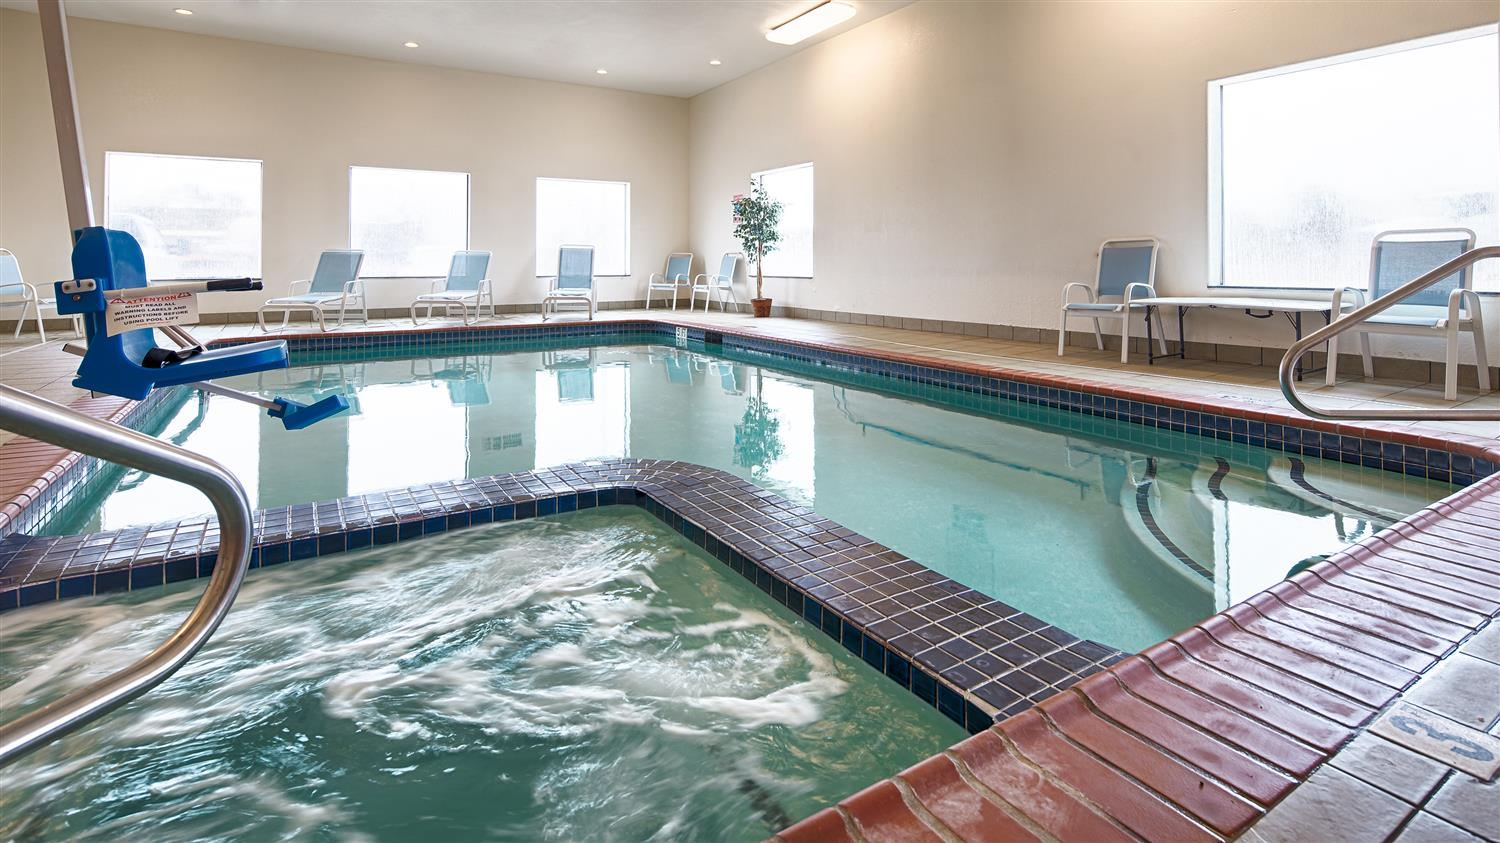 West Wing Boutique Hotel Tampa, FL | Hotel near University